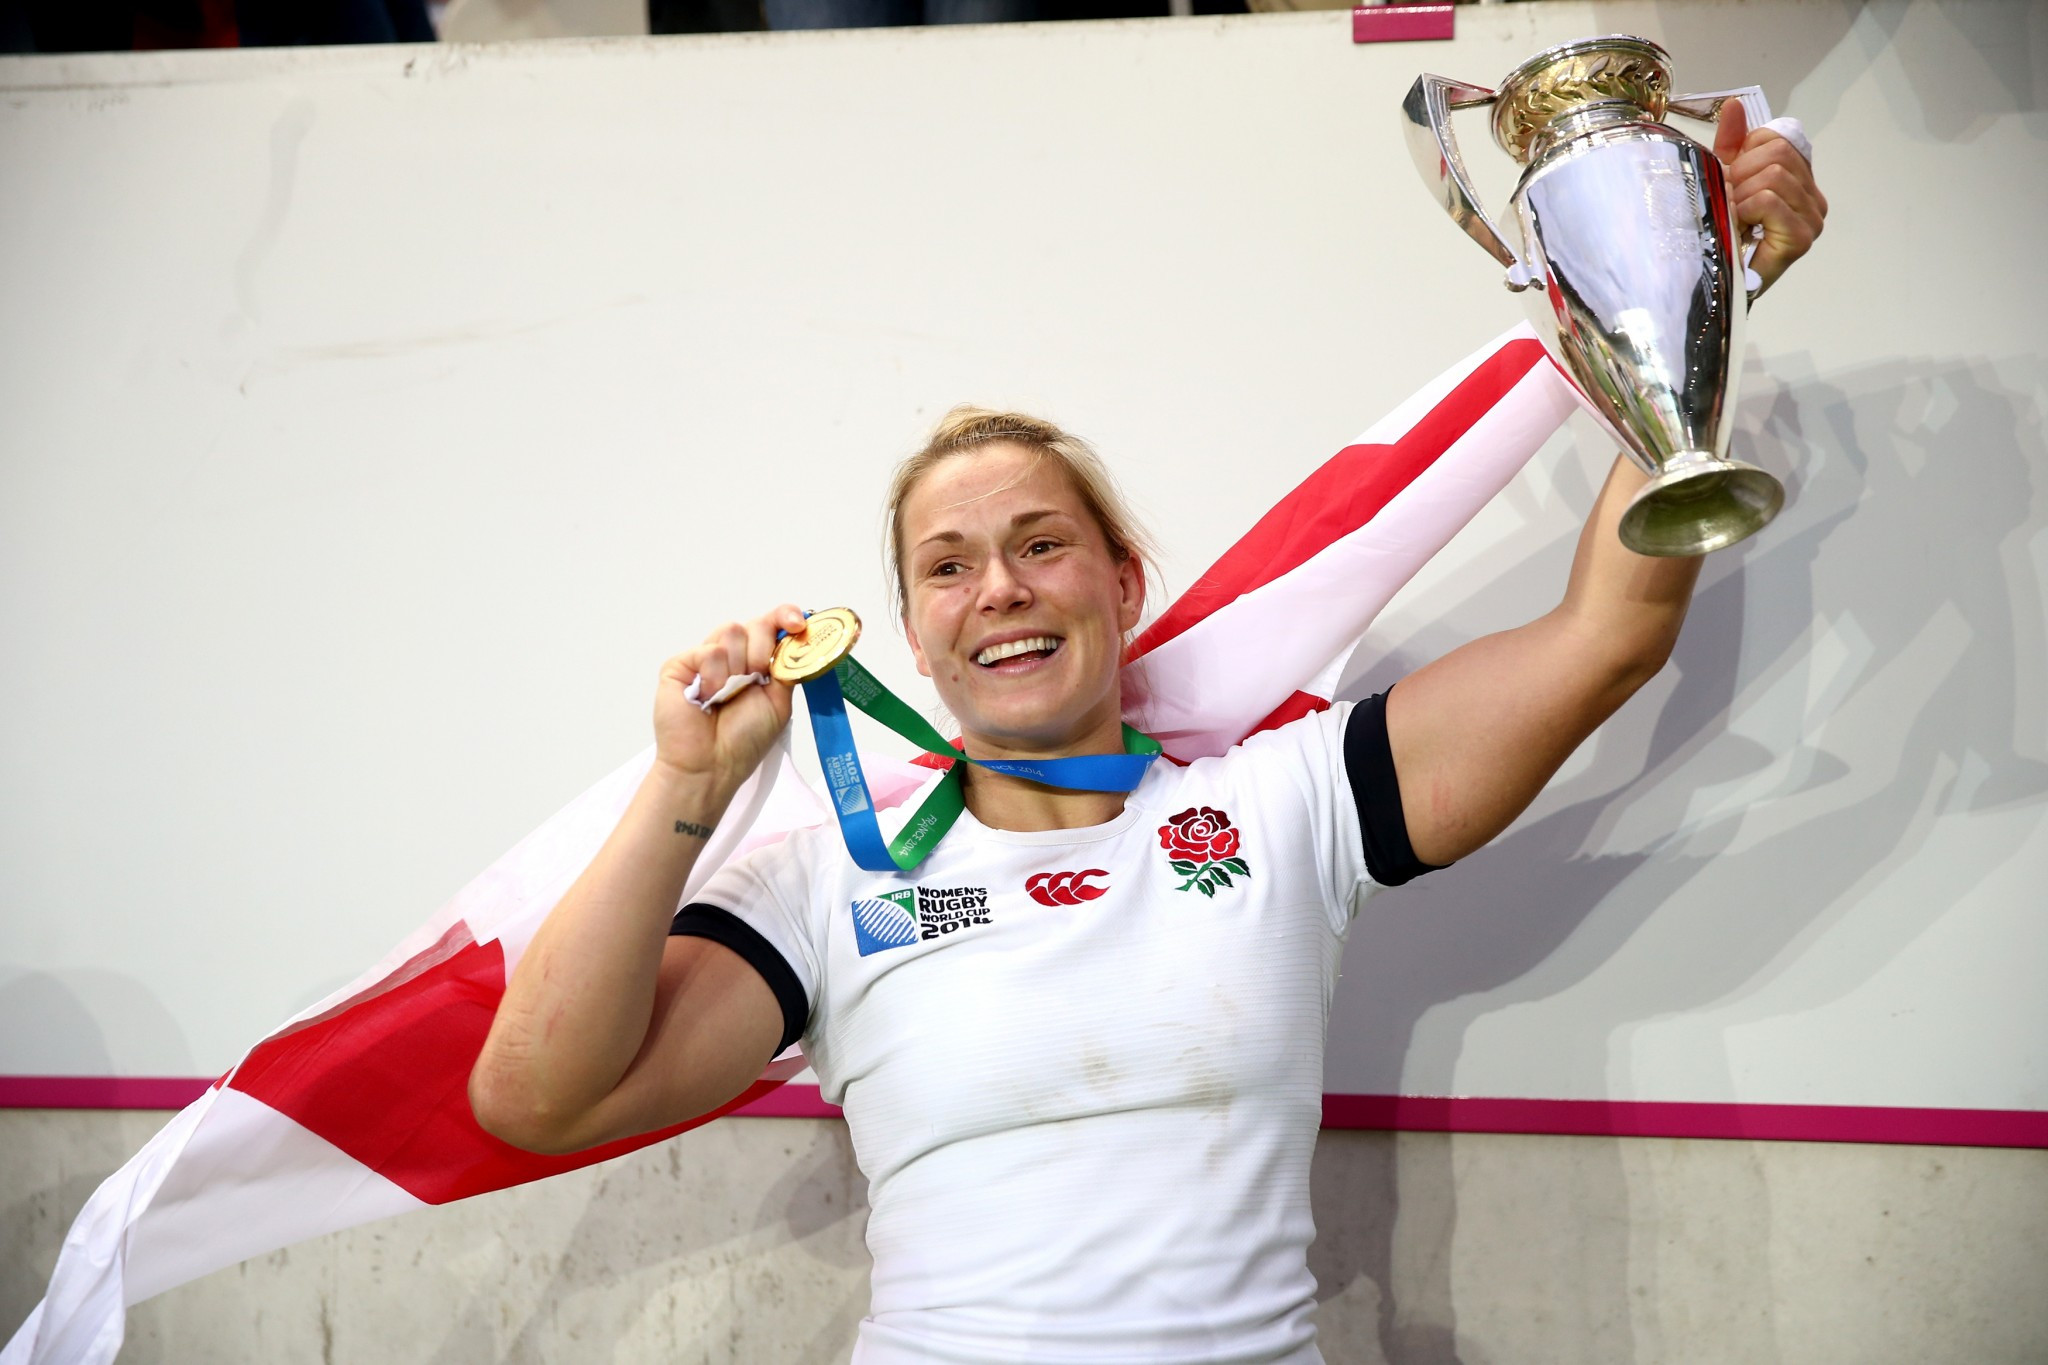 World Rugby's Sadleir defends RFU over England women's contract decision